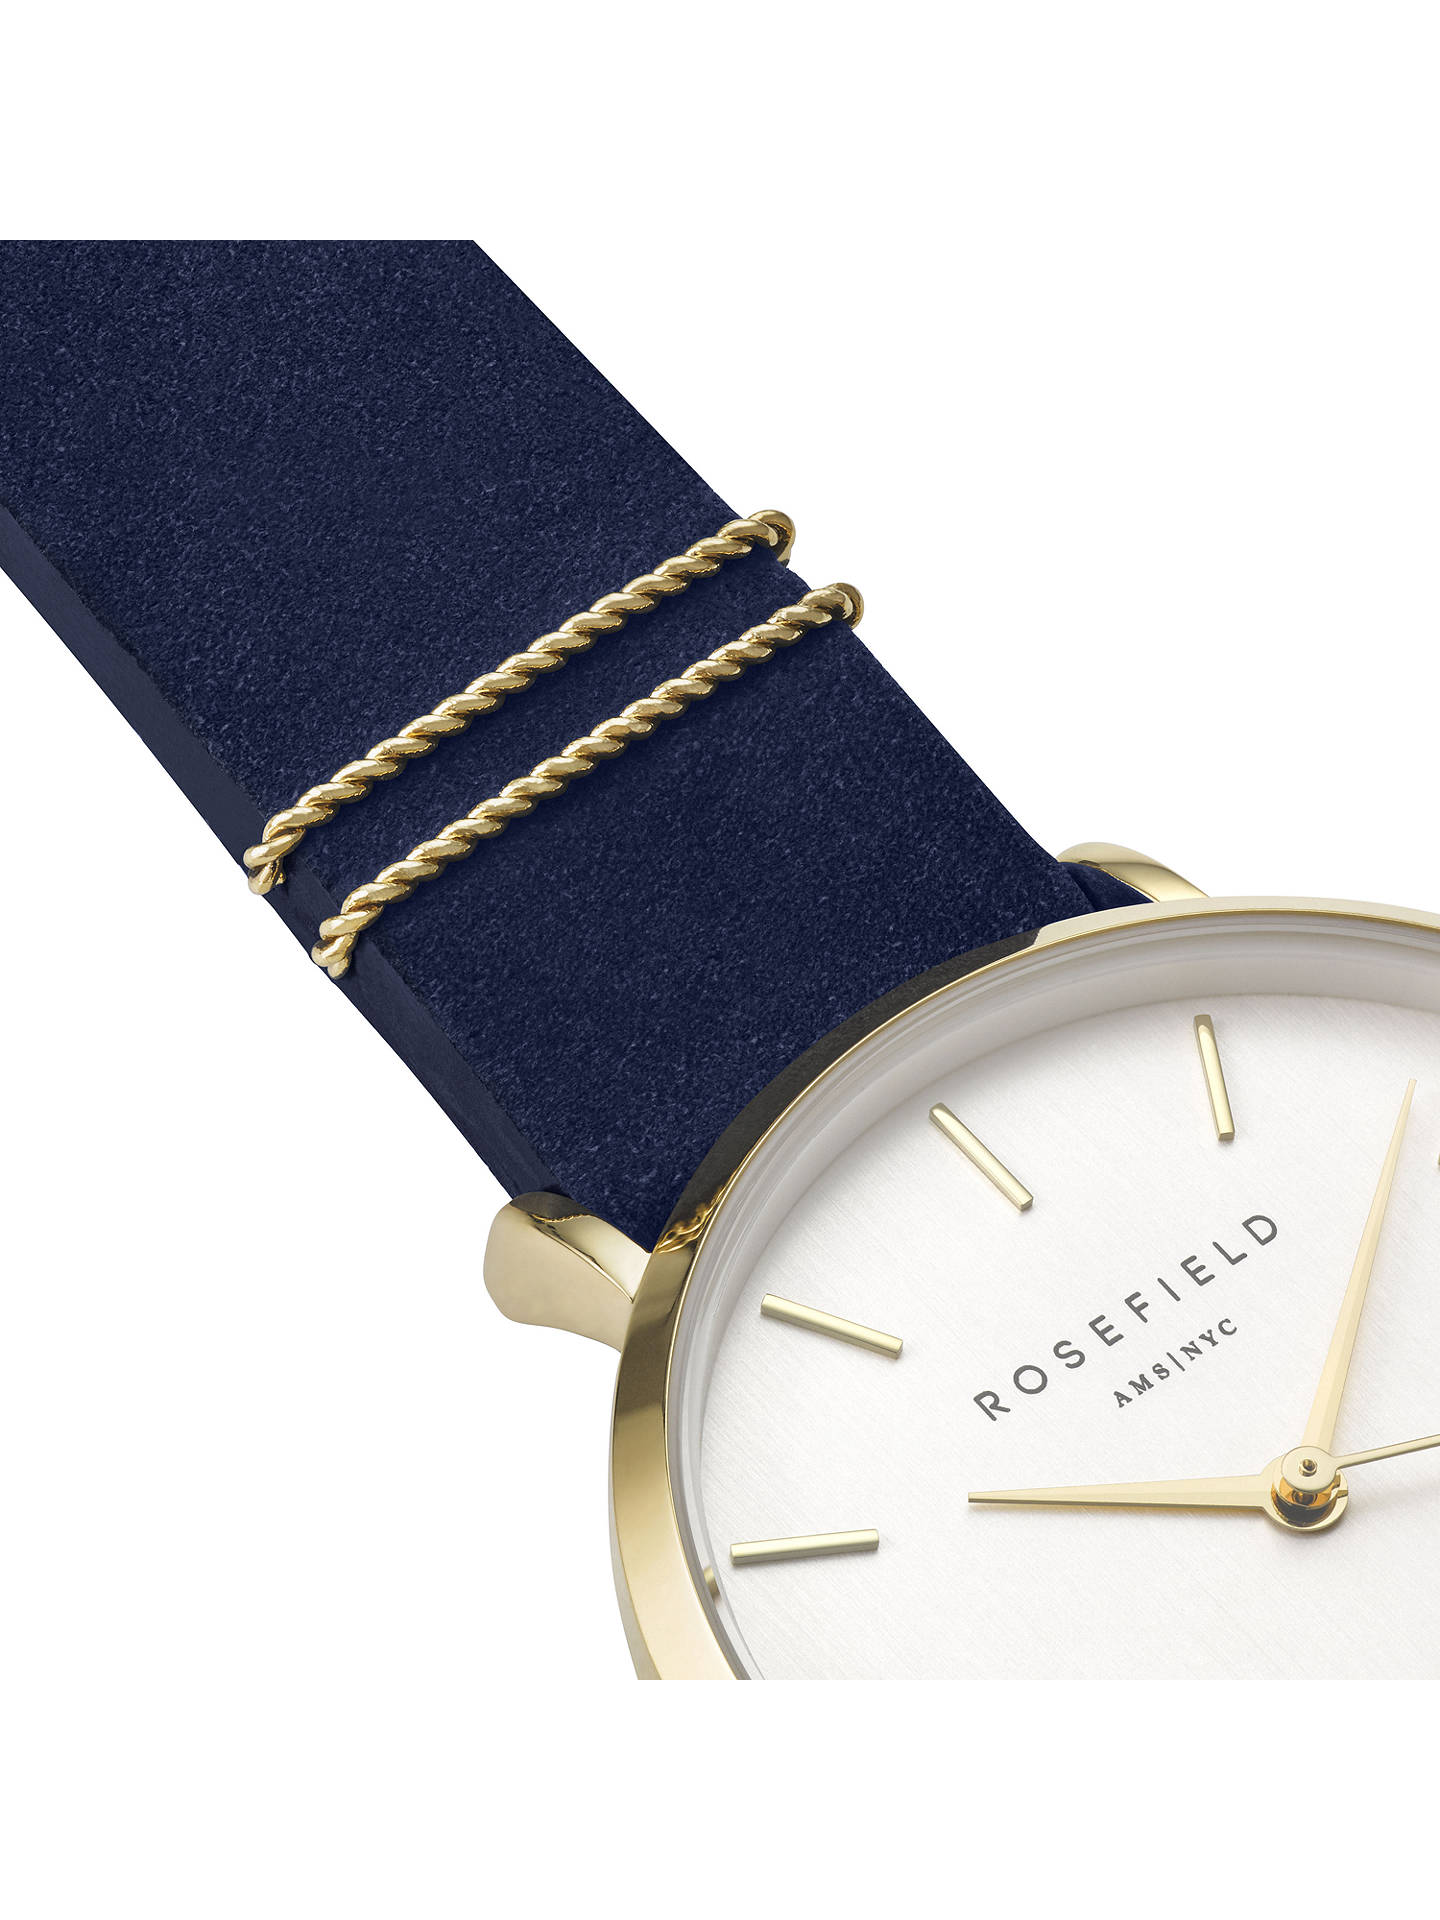 BuyROSEFIELD WBUG-W70 Women's The West Village Leather Strap Watch, Navy/White Online at johnlewis.com